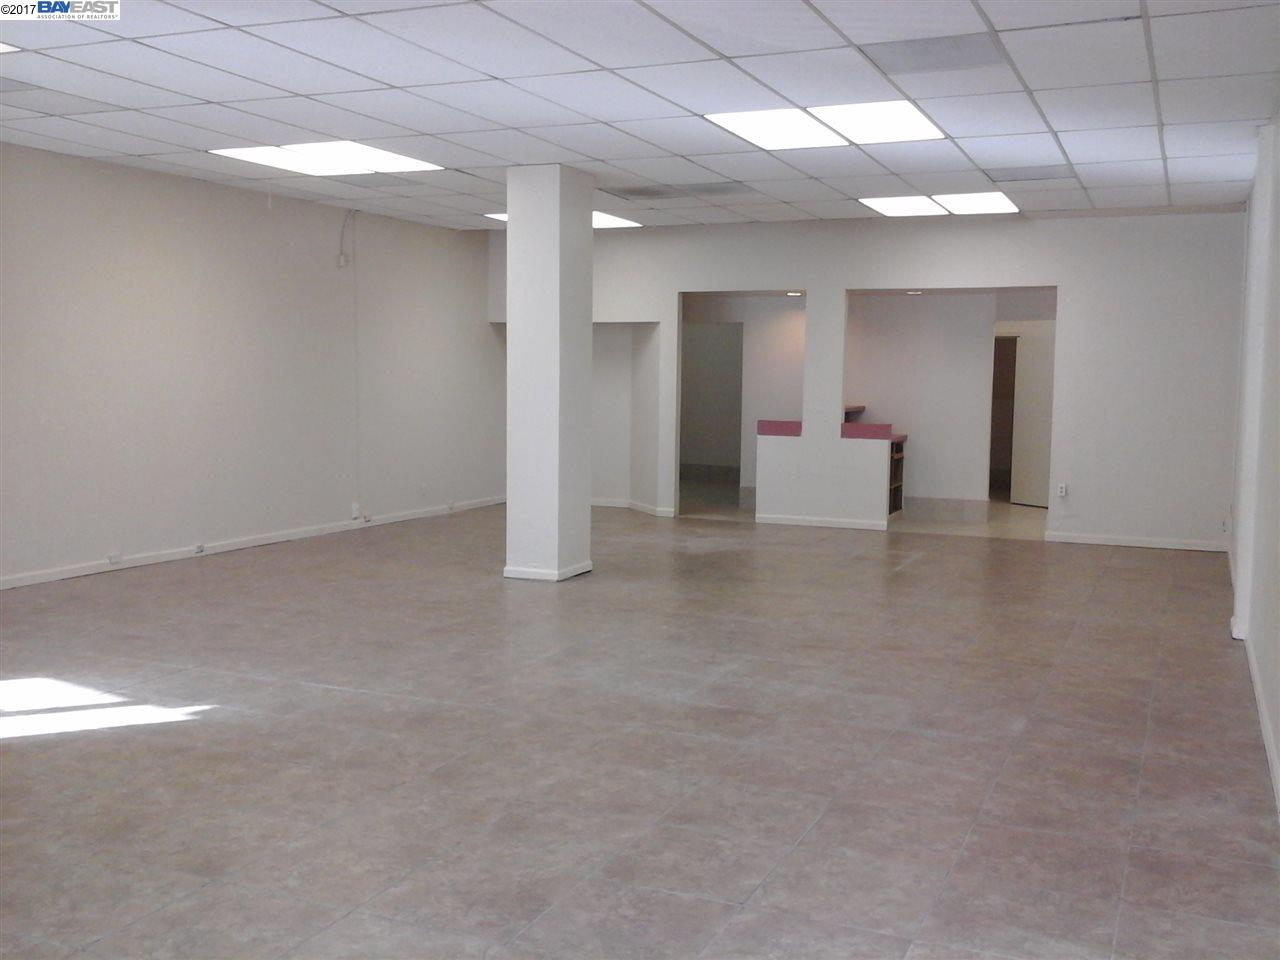 Single Family Home for Rent at 22620 Foothill Blvd. Hayward, California 94541 United States